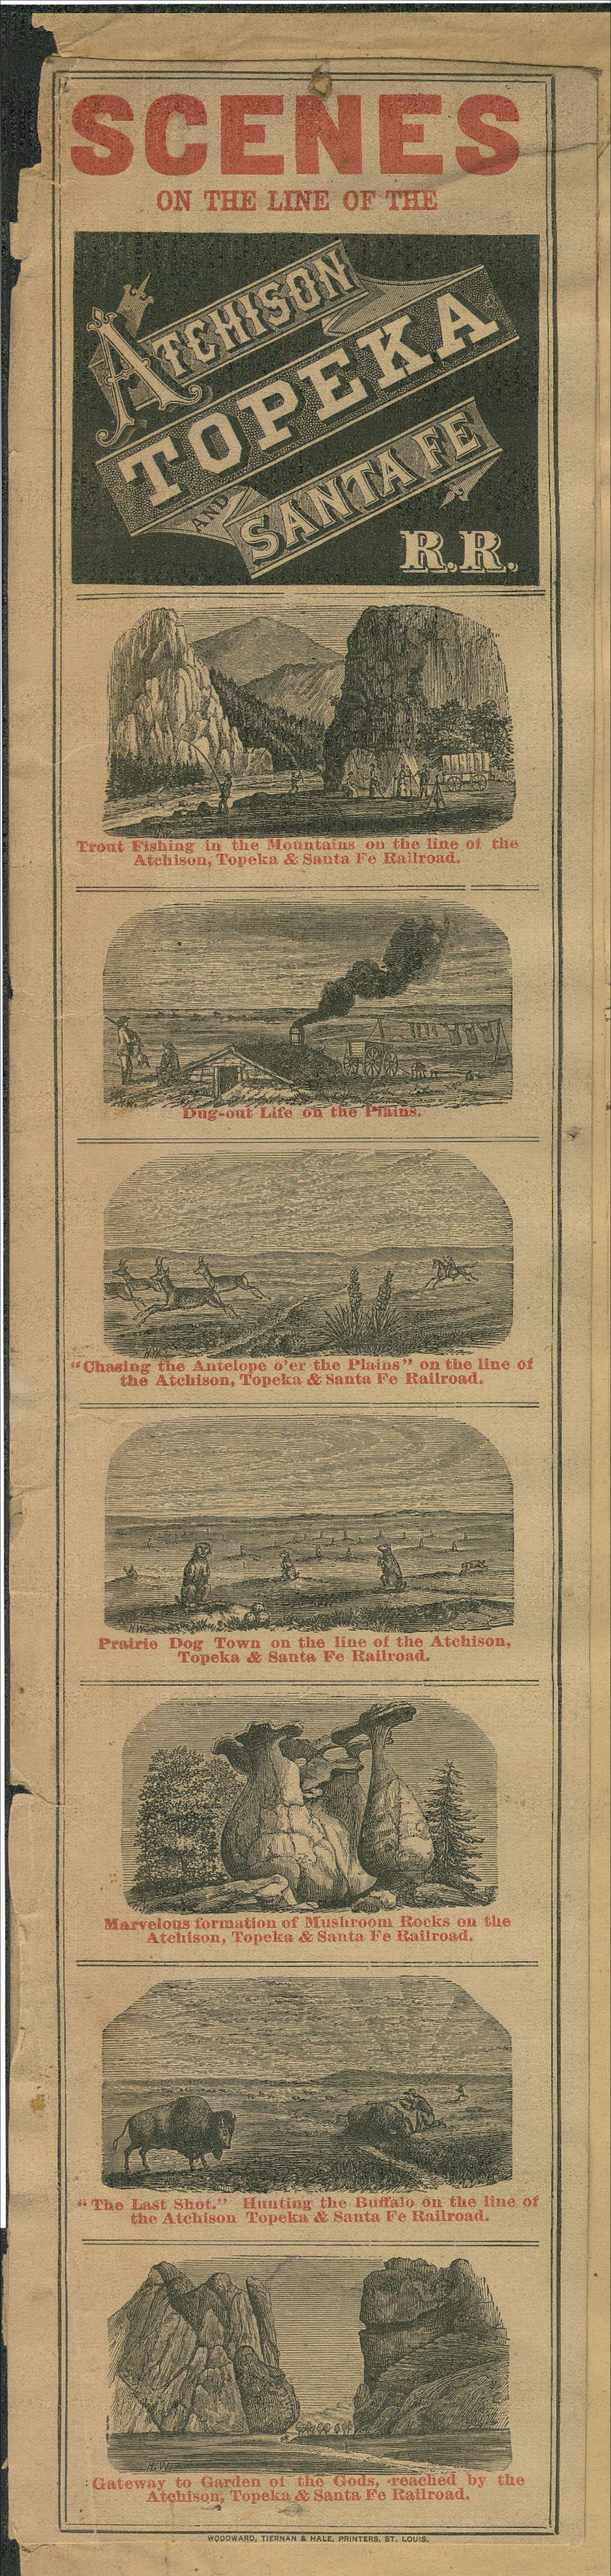 Scenes on the Line of the Atchison, Topeka and Santa Fe Railroad. - 2